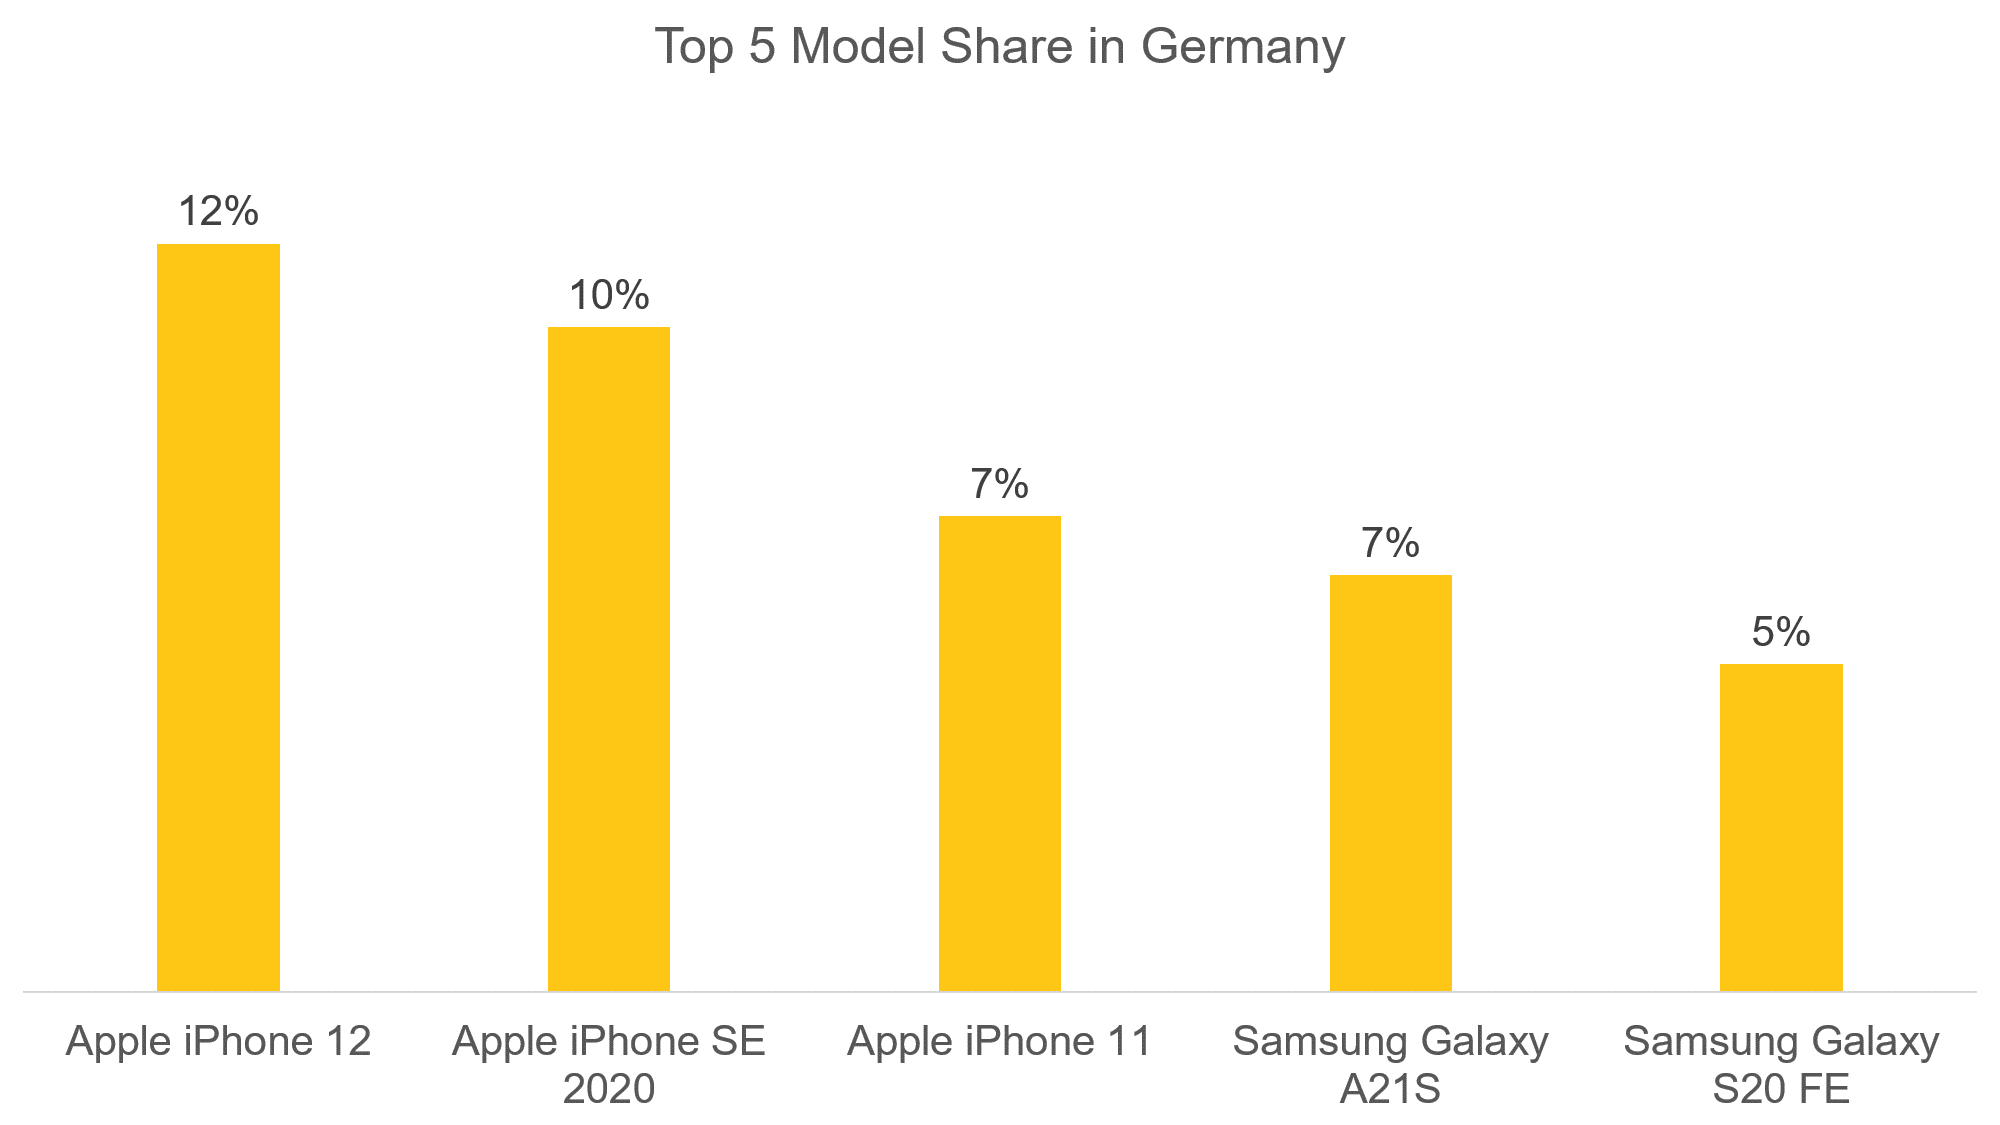 Top 5 Model Share in Germany - Oct 2020